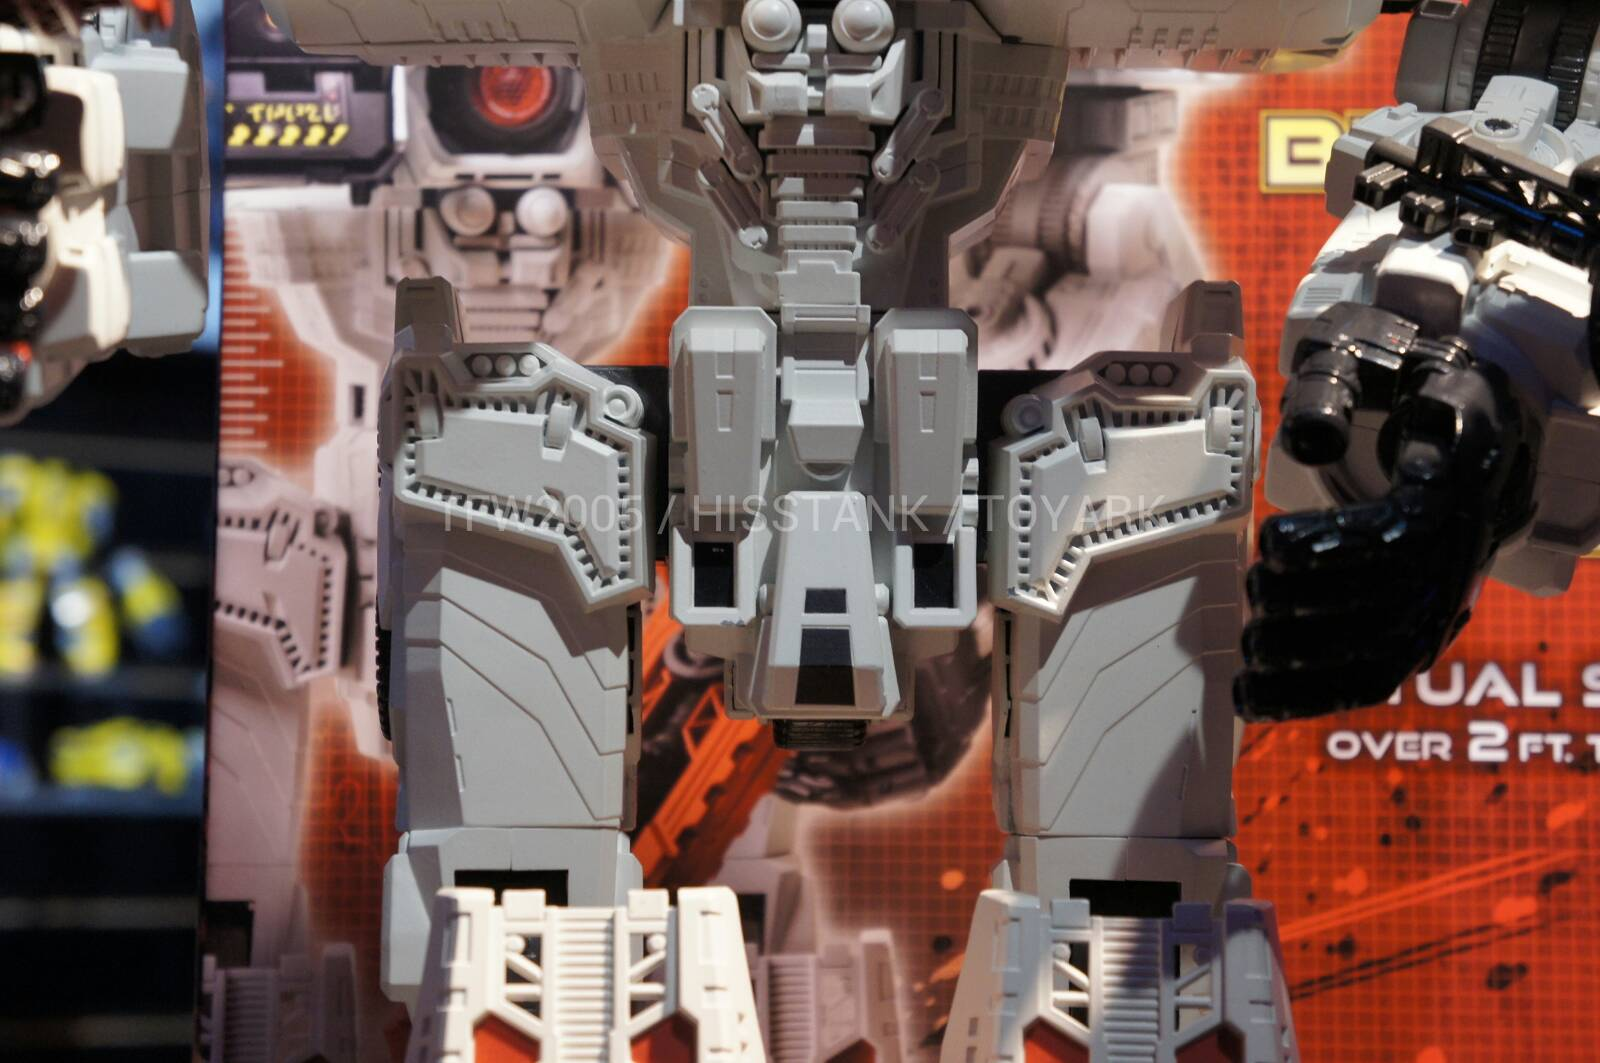 Transformers-Metroplex-Toy-Fair-2013-018